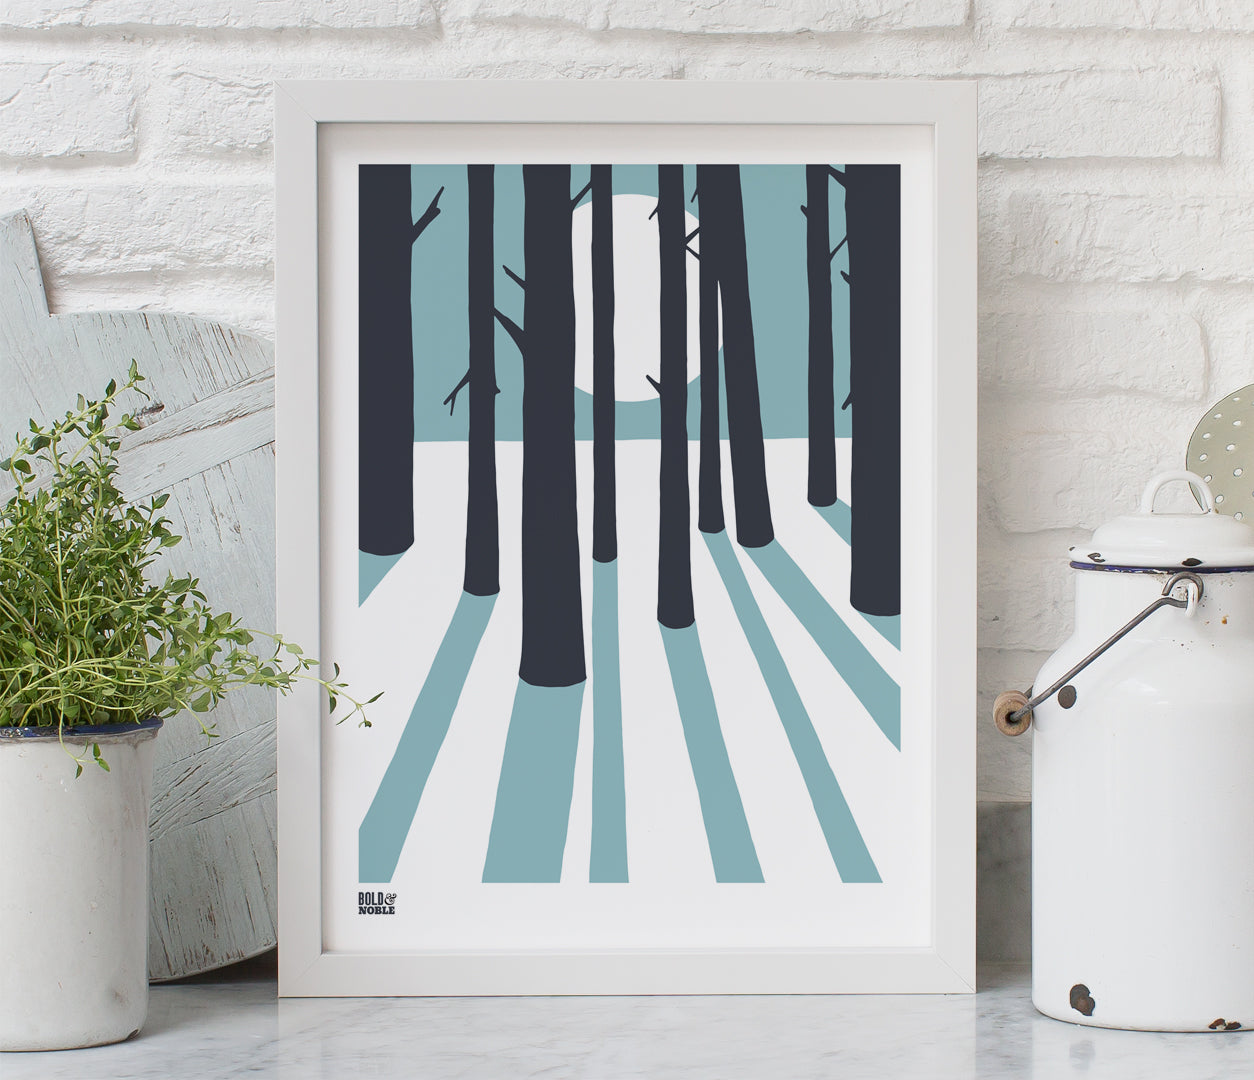 Pictures and Wall Art, Screen Printed In the Woods in Coastal Blue